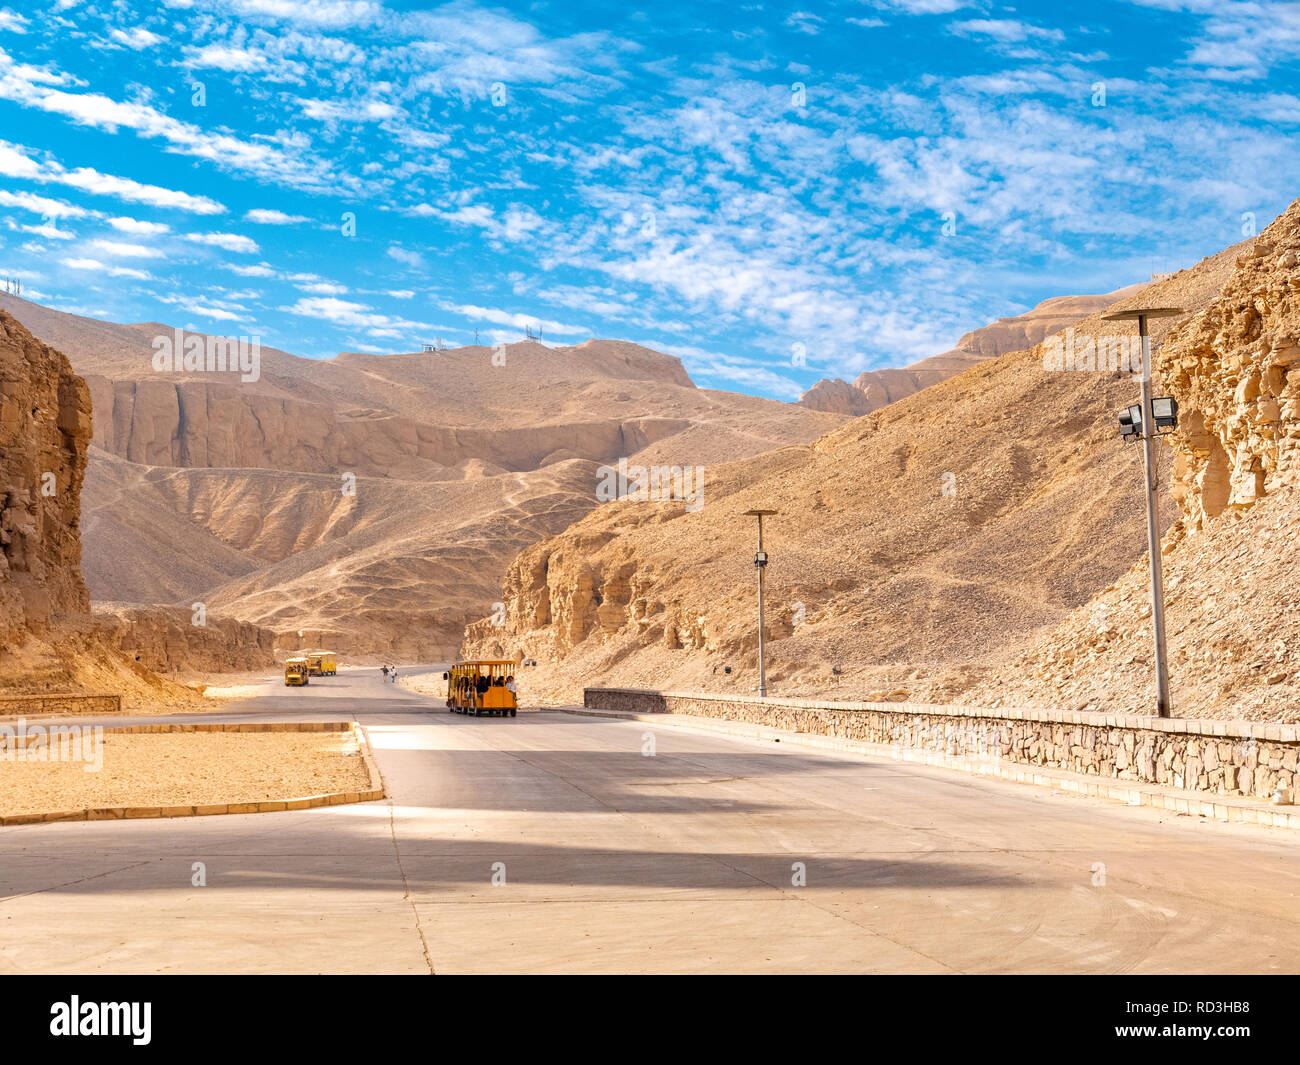 Valley of the Kings the burial place of Egyptian Pharaohs - Stock Image